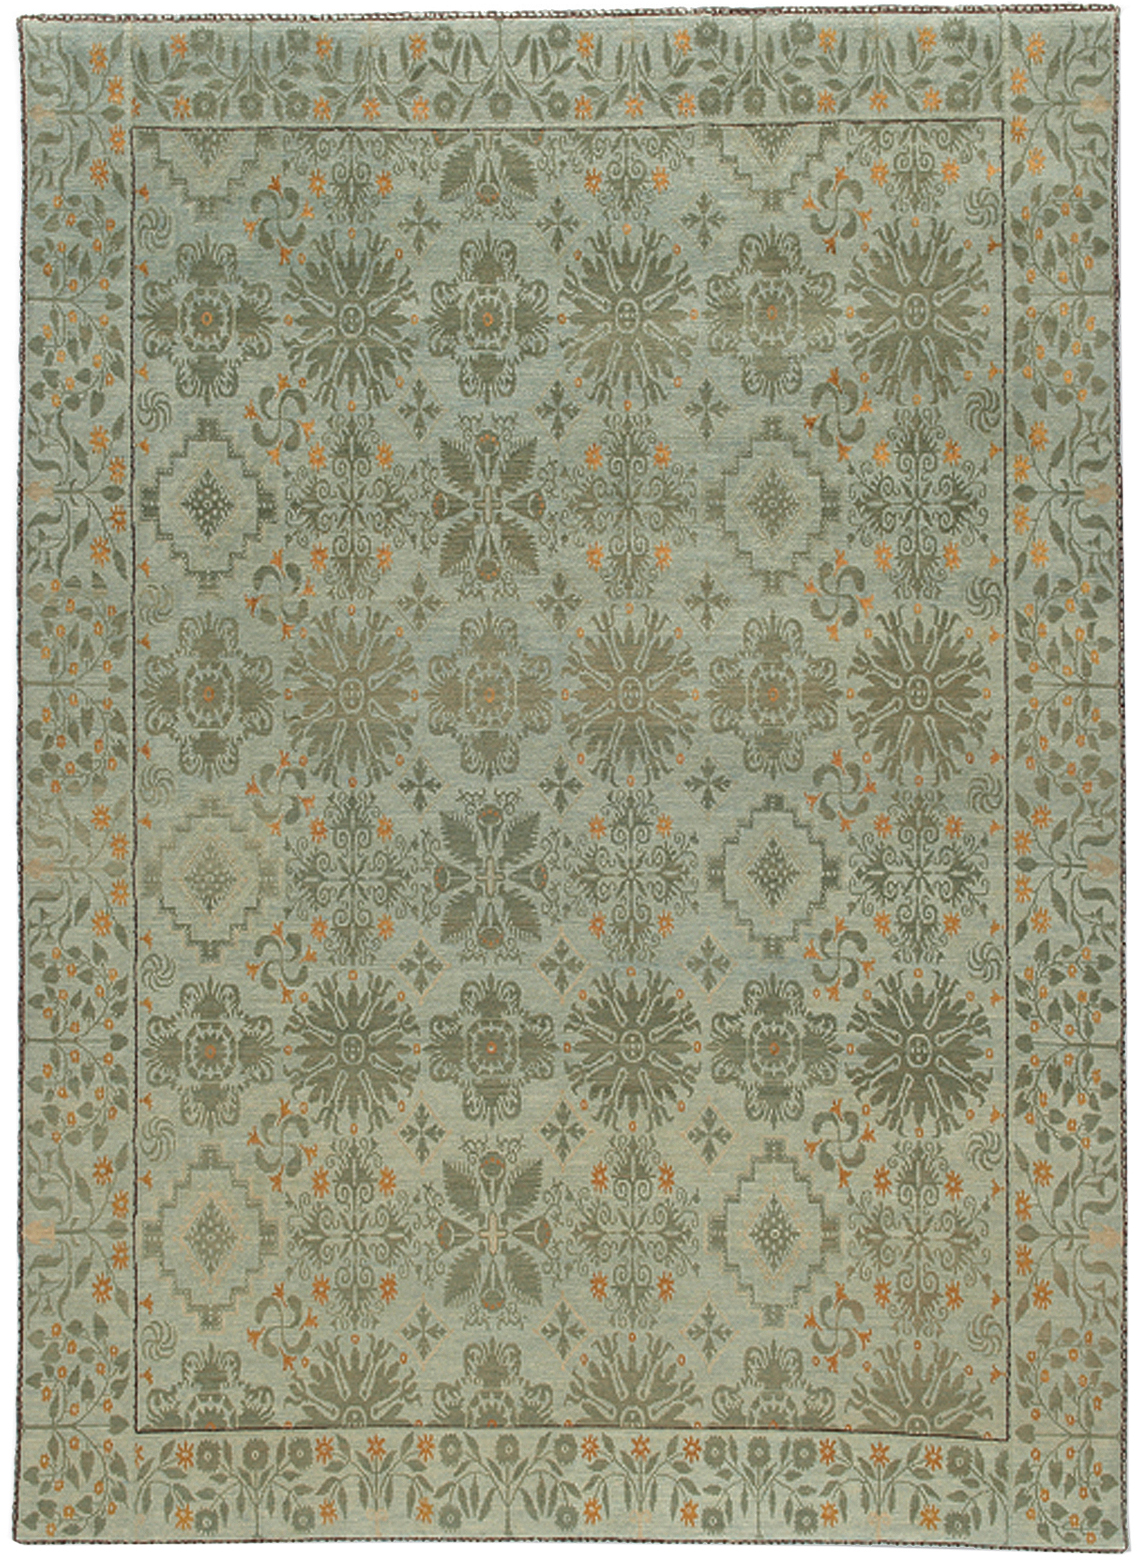 Odegard Image 16_AMERICAN QUILT